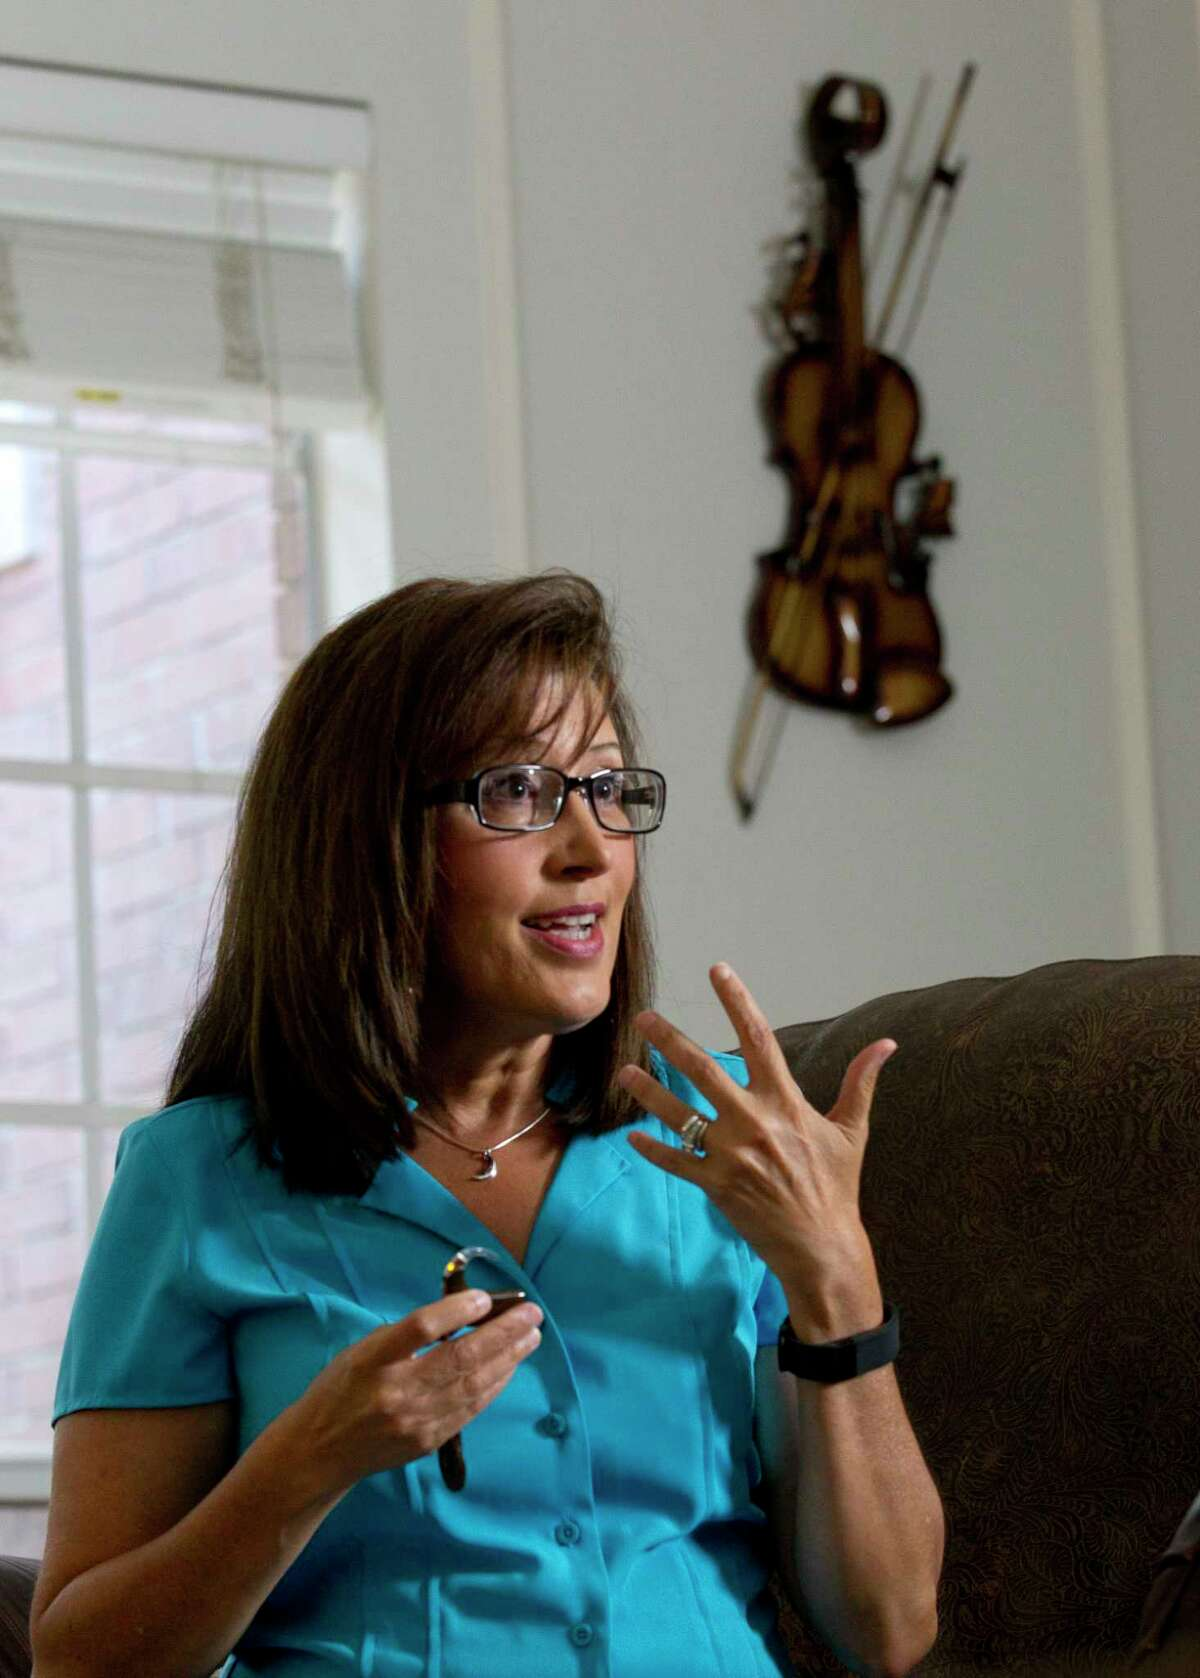 Susan Langlois describes how a cochlear implant, a surgically implanted medical device that sends sounds signals to the brain, changed her life during an interview at her home Wednesday, July 5, 2017, in Spring.